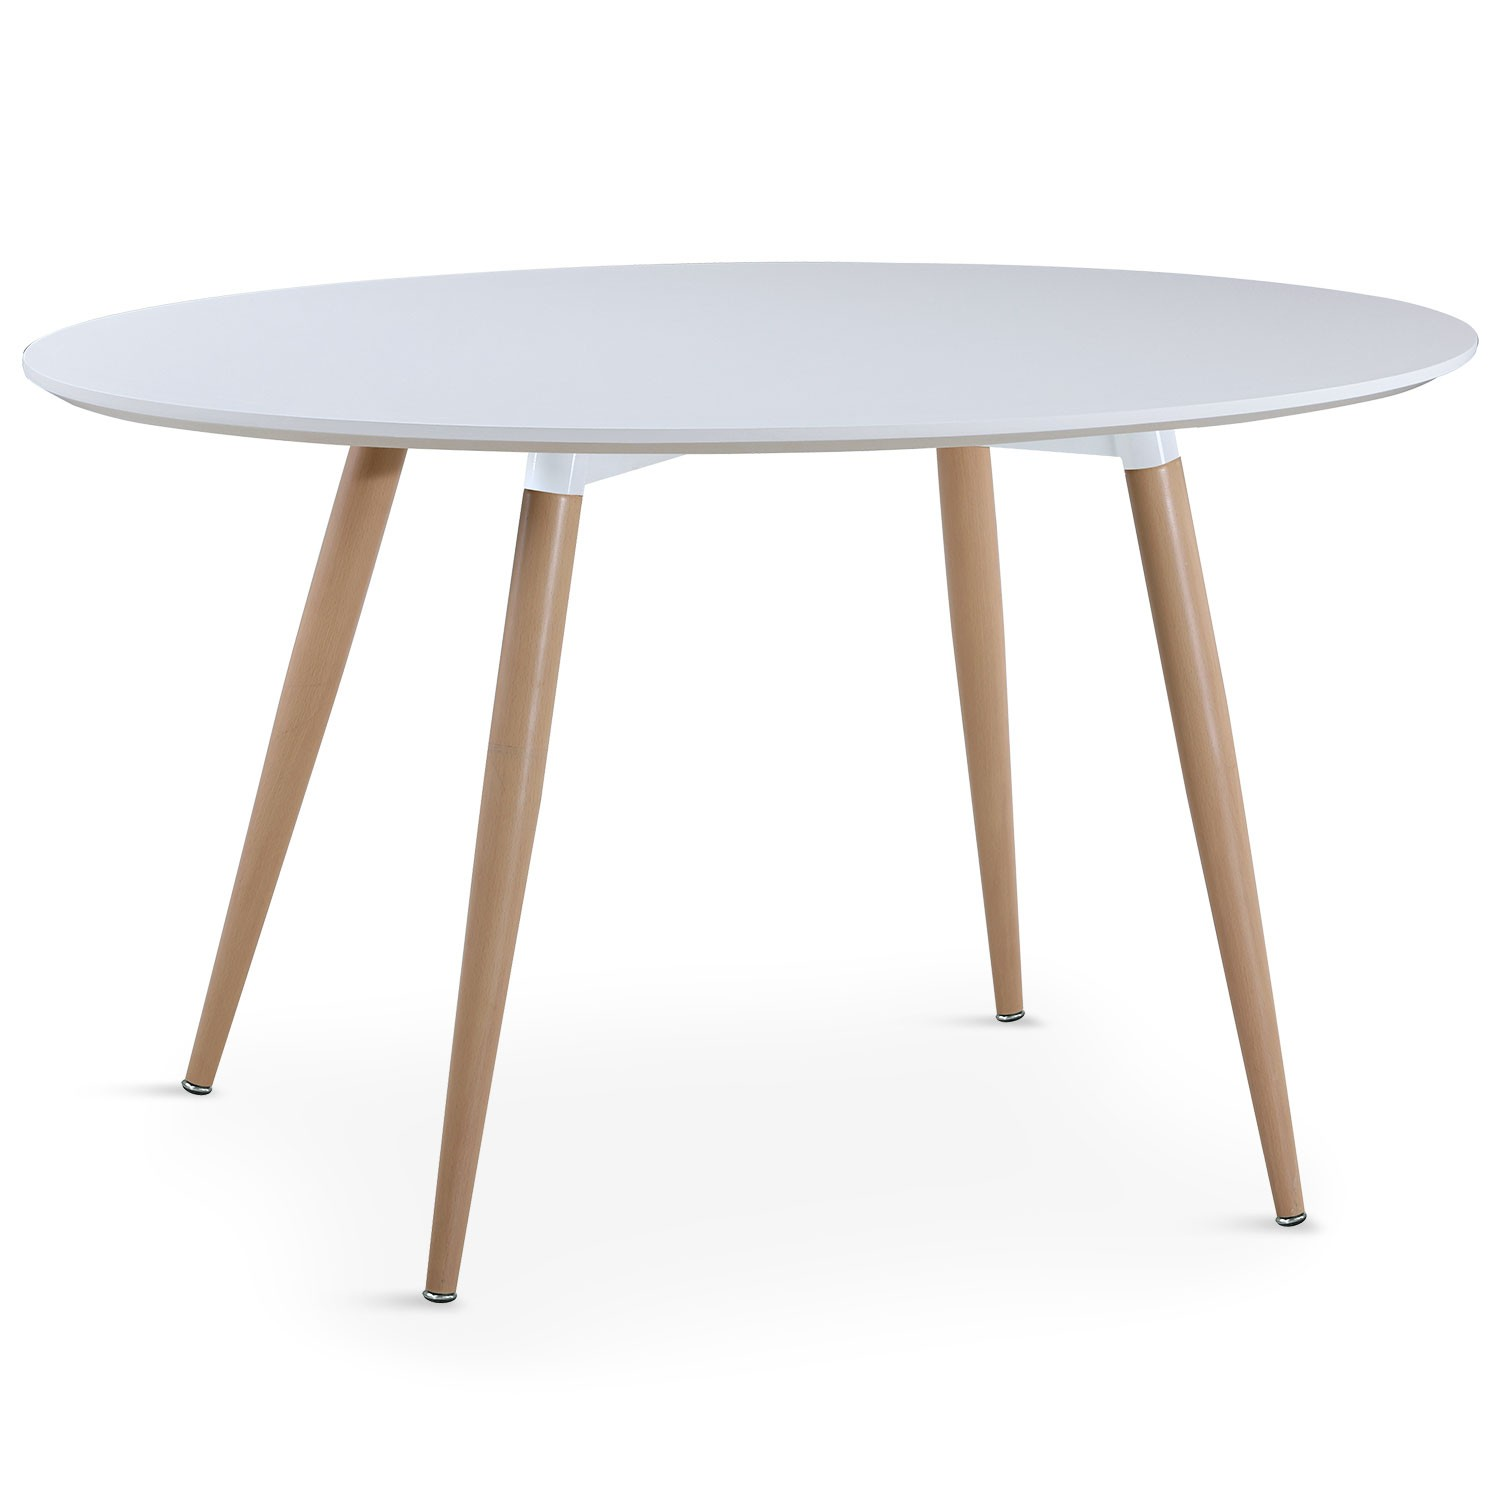 Table ovale scandinave lunea blanc table manger table table basse - Set de table ovale ...